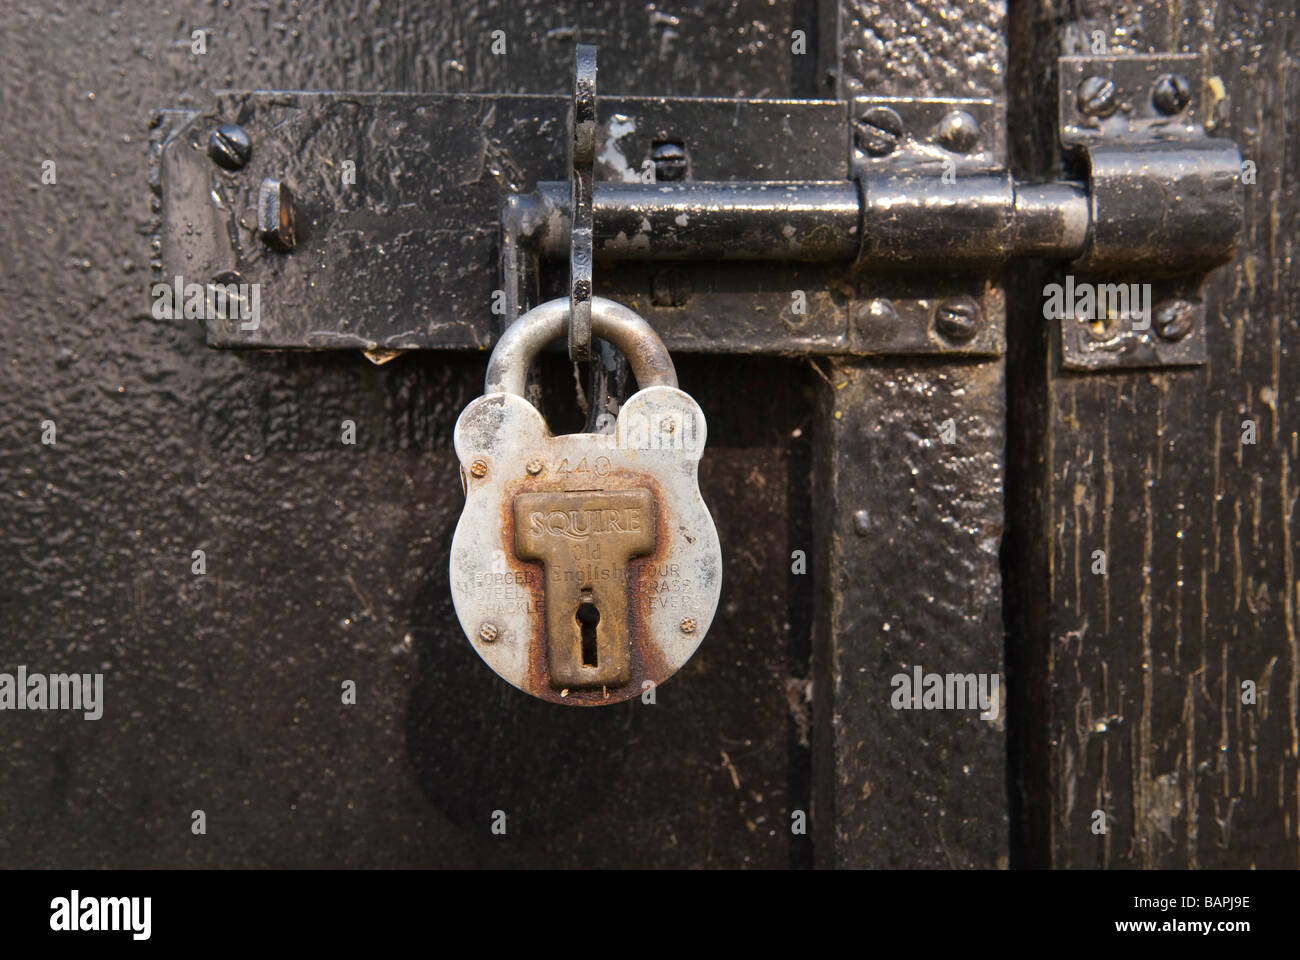 A Squire forged steel shackle padlock locked on a bolt on a garden shed door - Stock Image